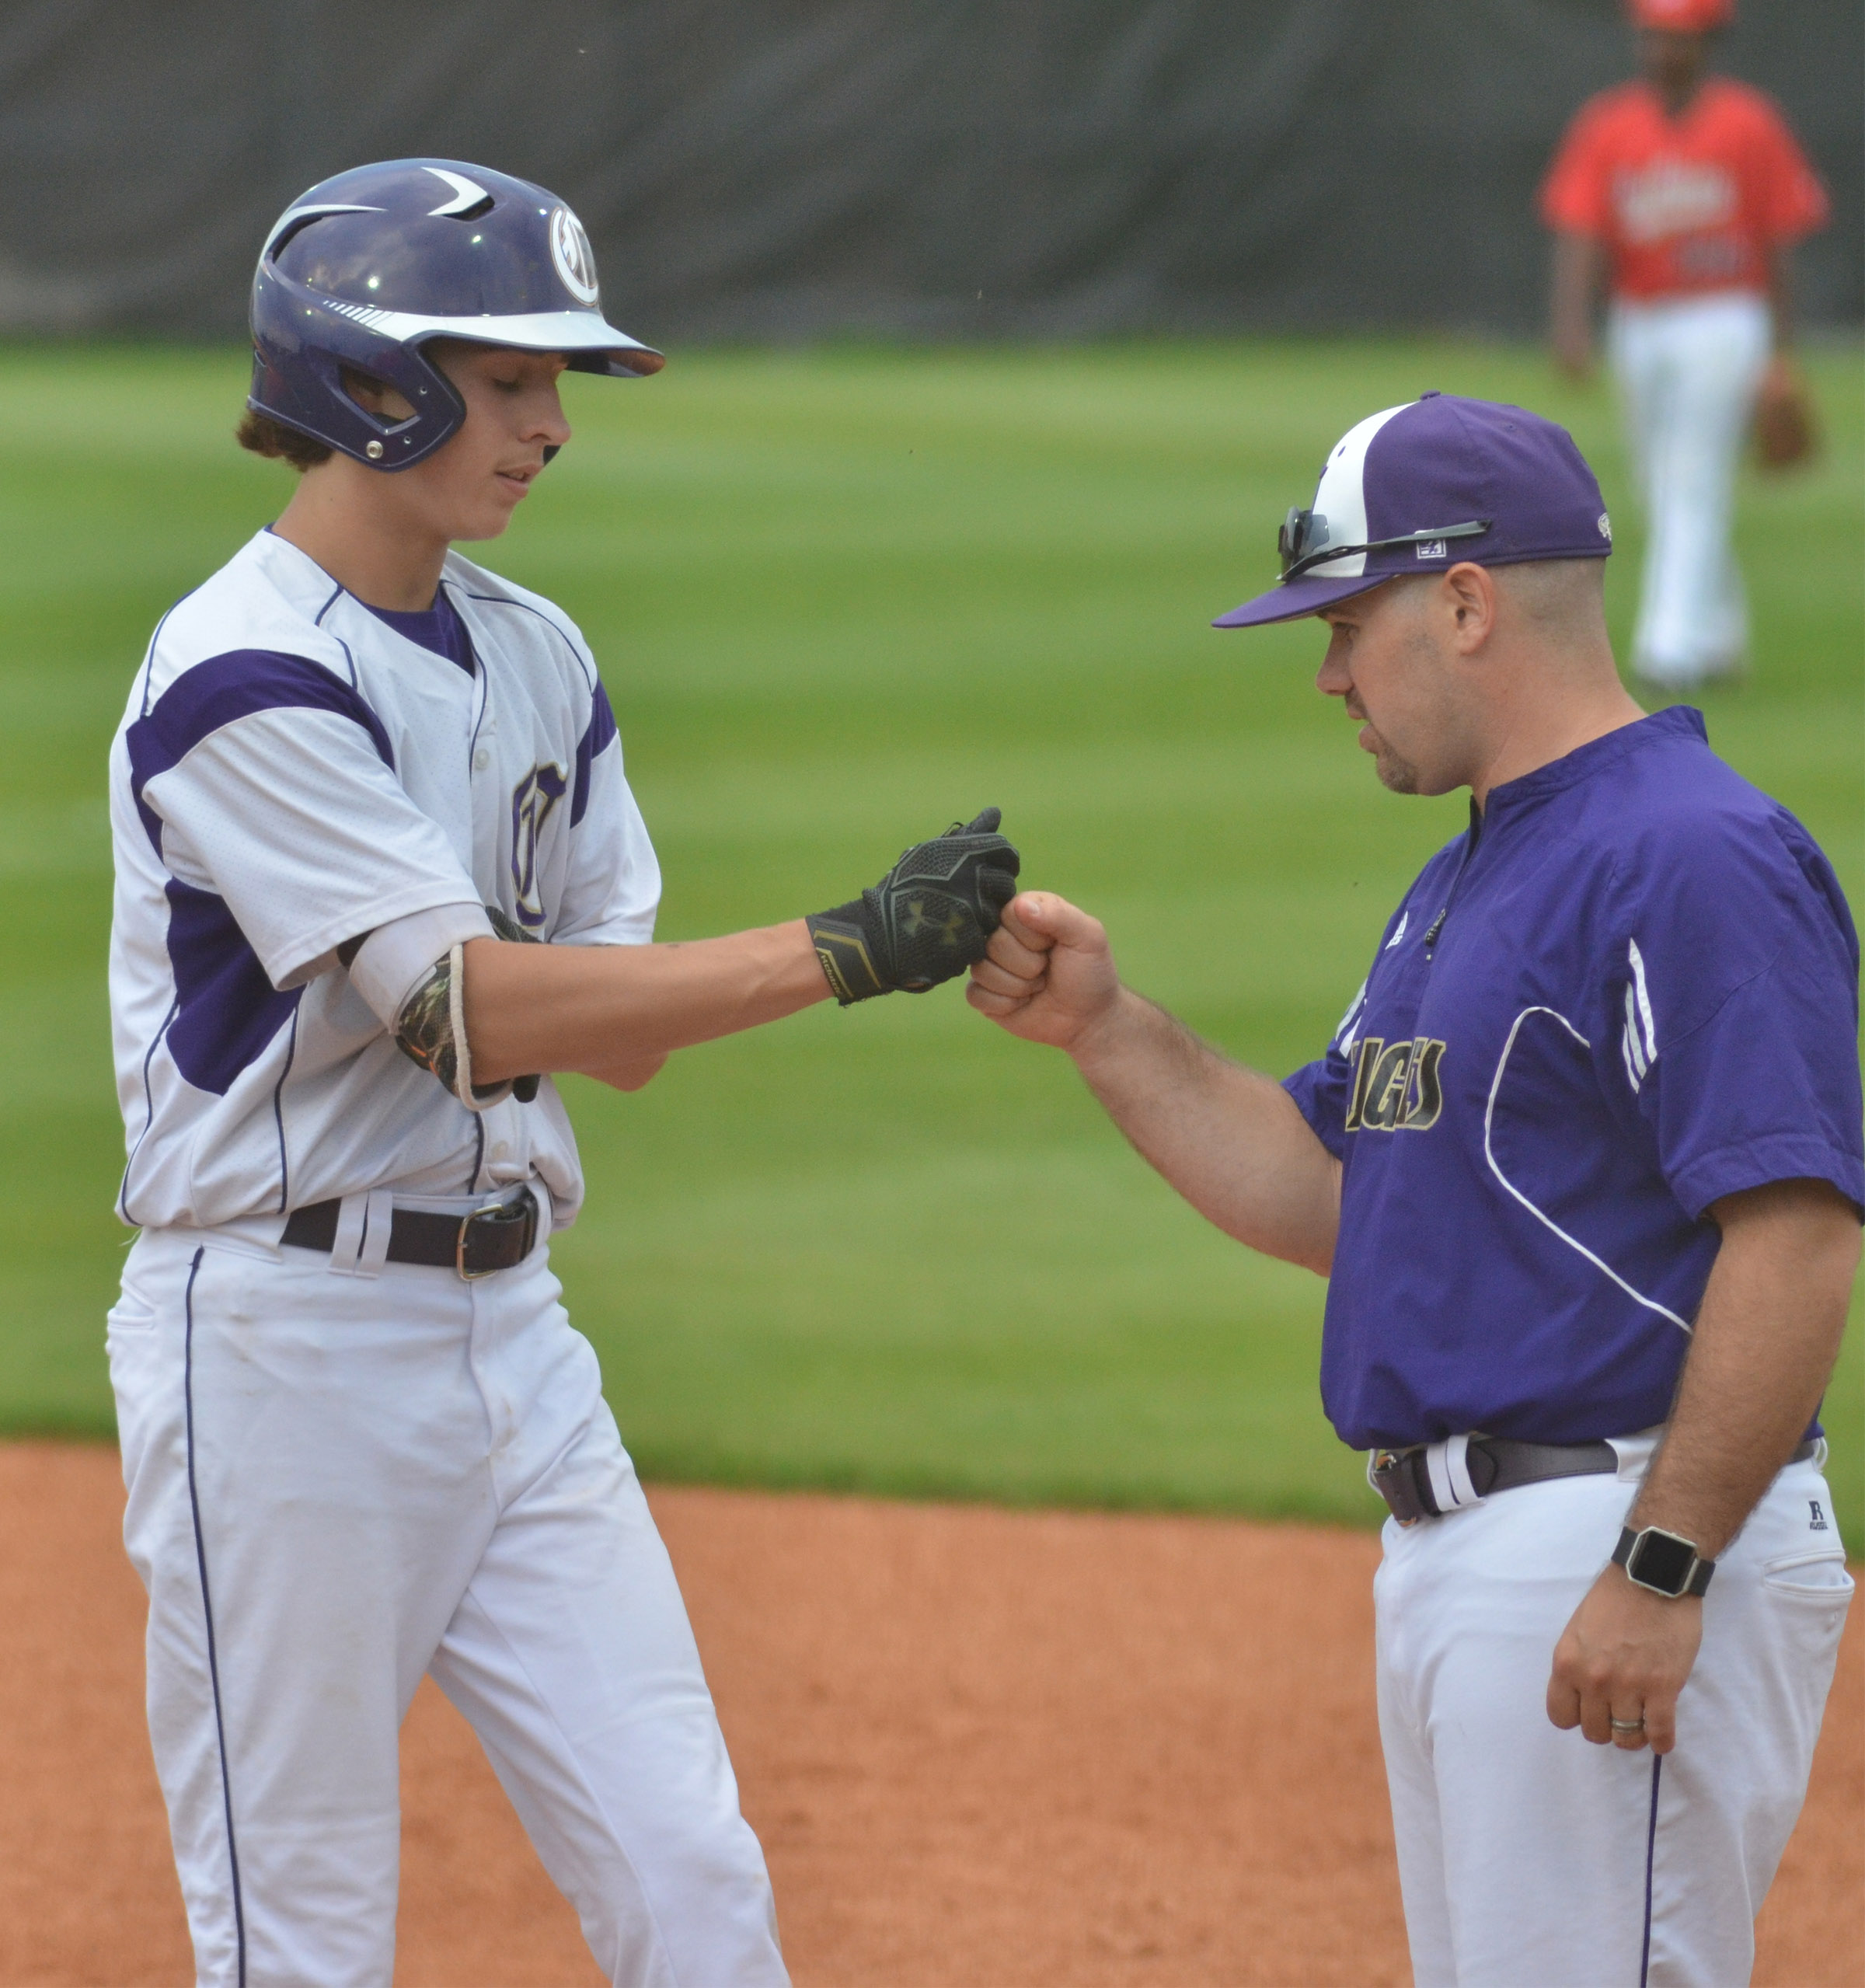 Blake Milby, at right, a former CHS baseball player and assistant coach, has been named head coach. He succeeds Kirby Smith, who coached for 11 years and is now superintendent.